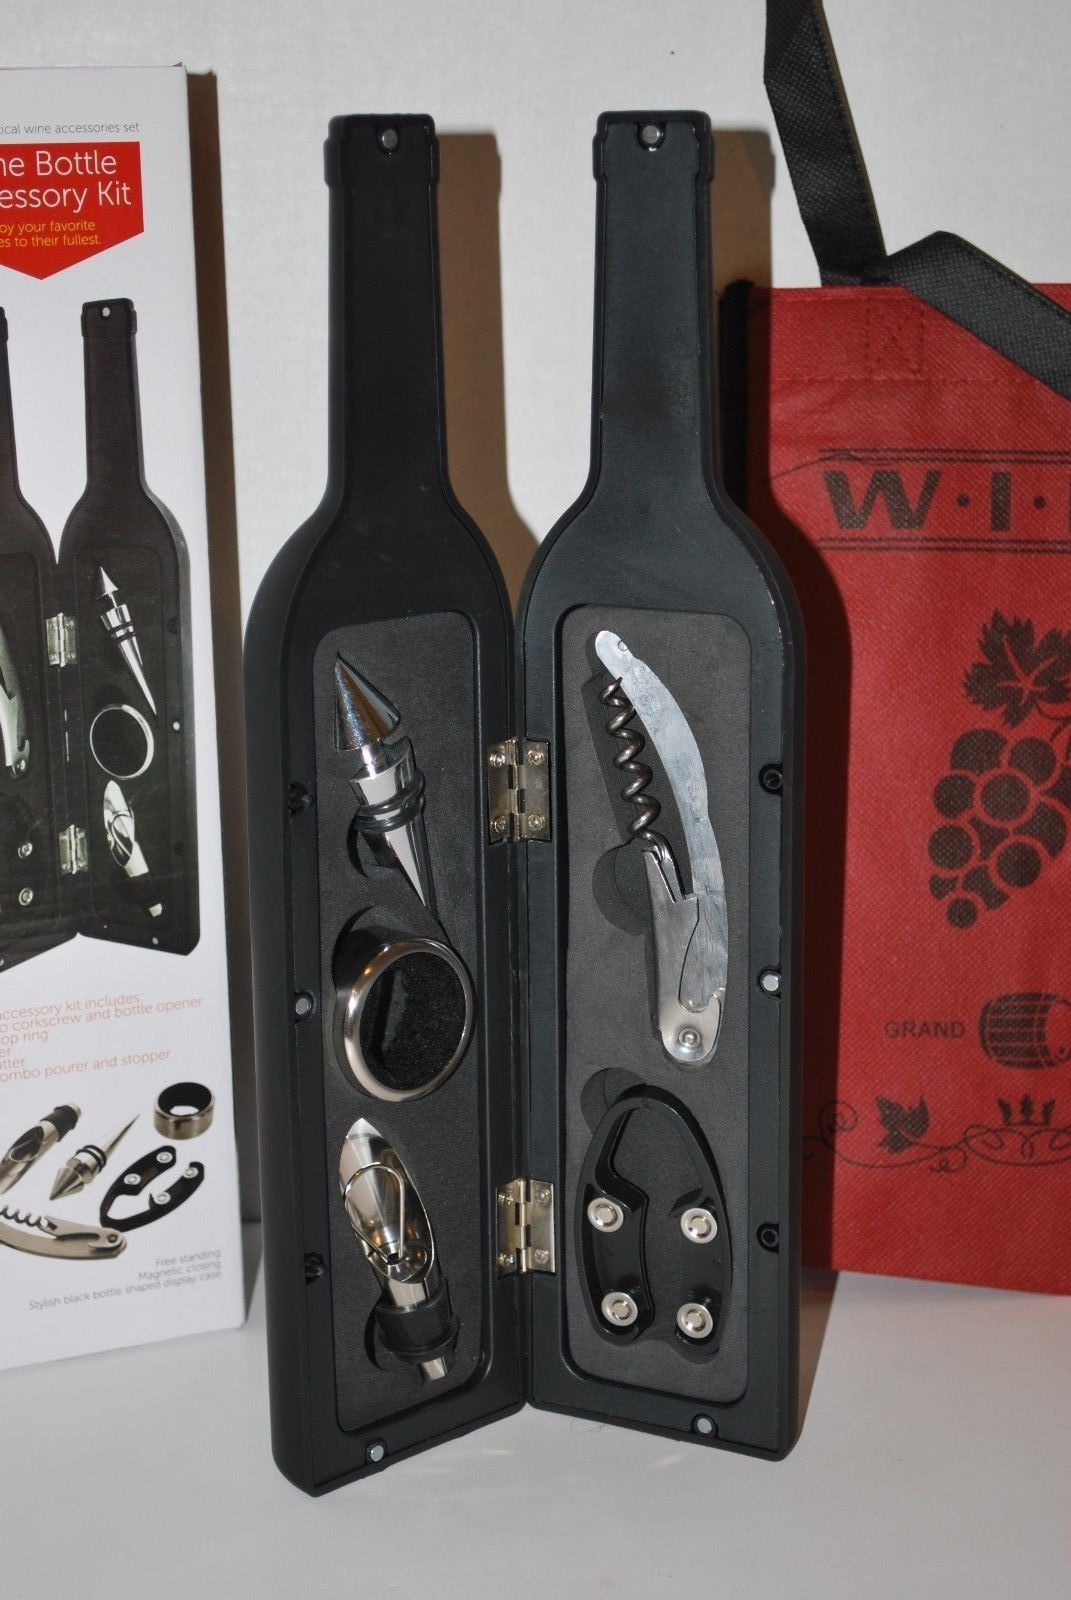 Wine Bottle Accessory Gift Set (5-PC) with Free Wine Tote